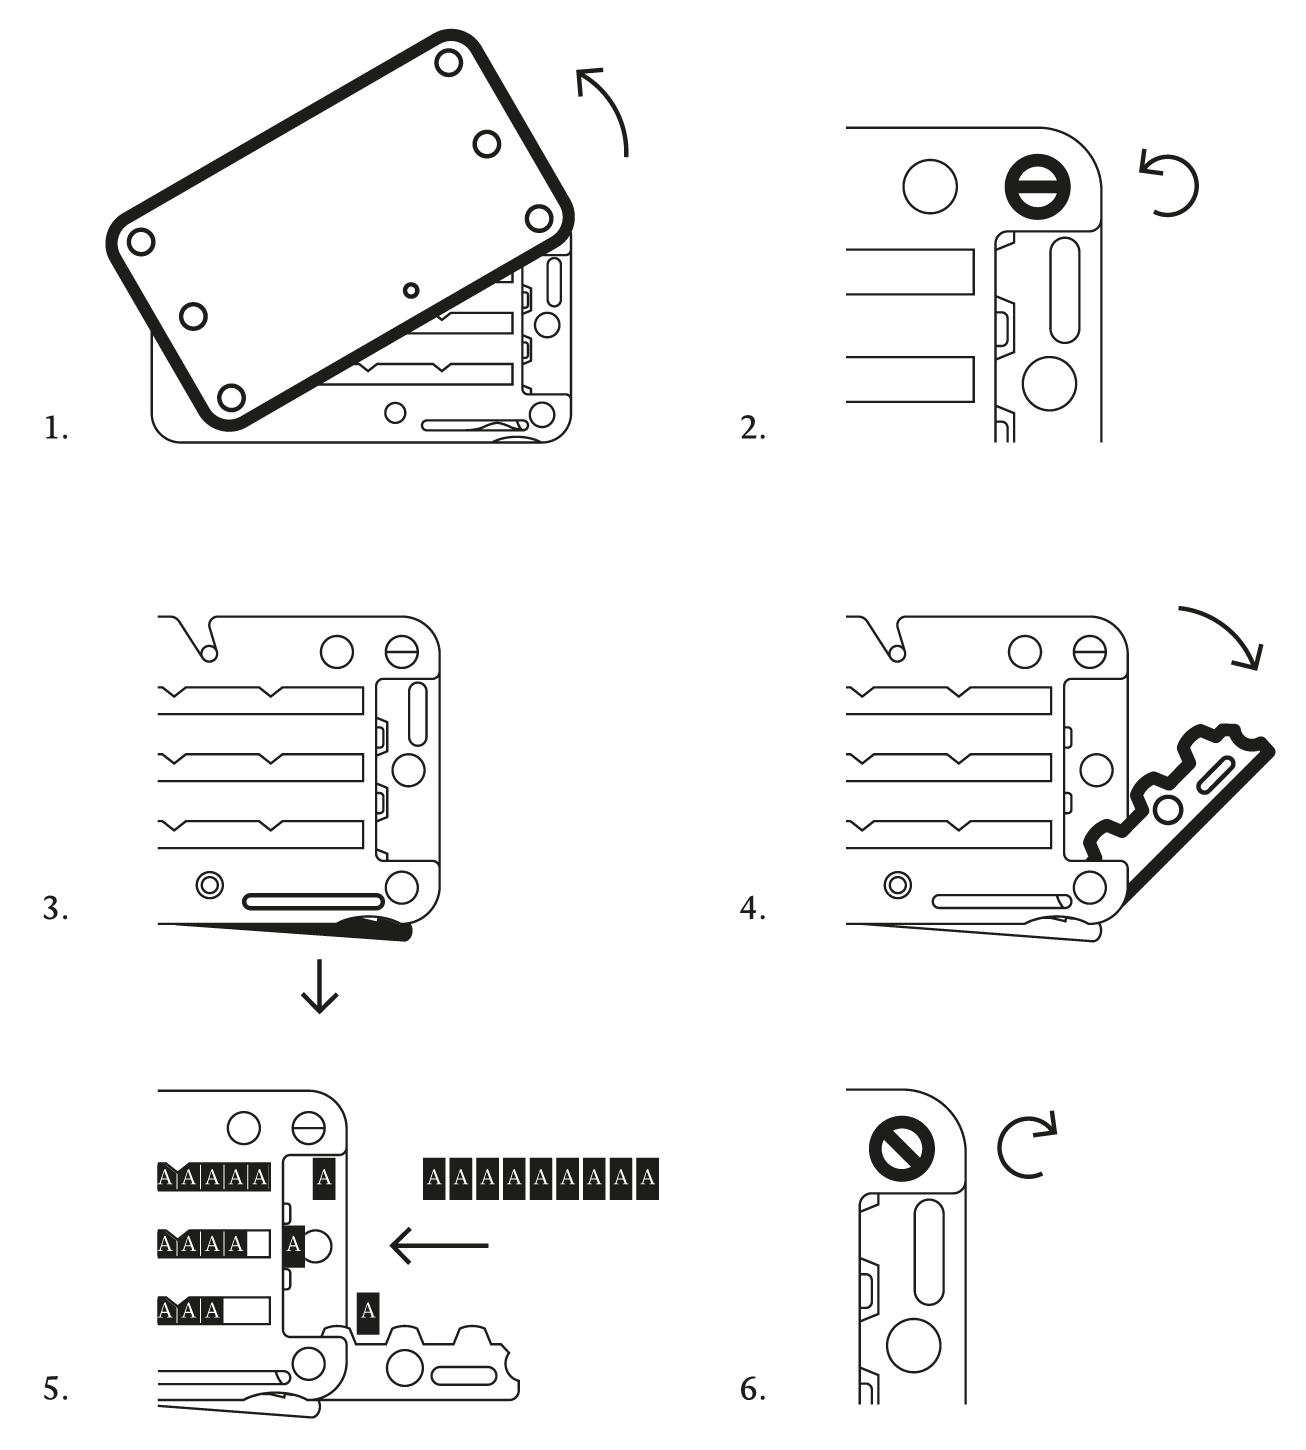 Cryptosteel Cassette User Manual